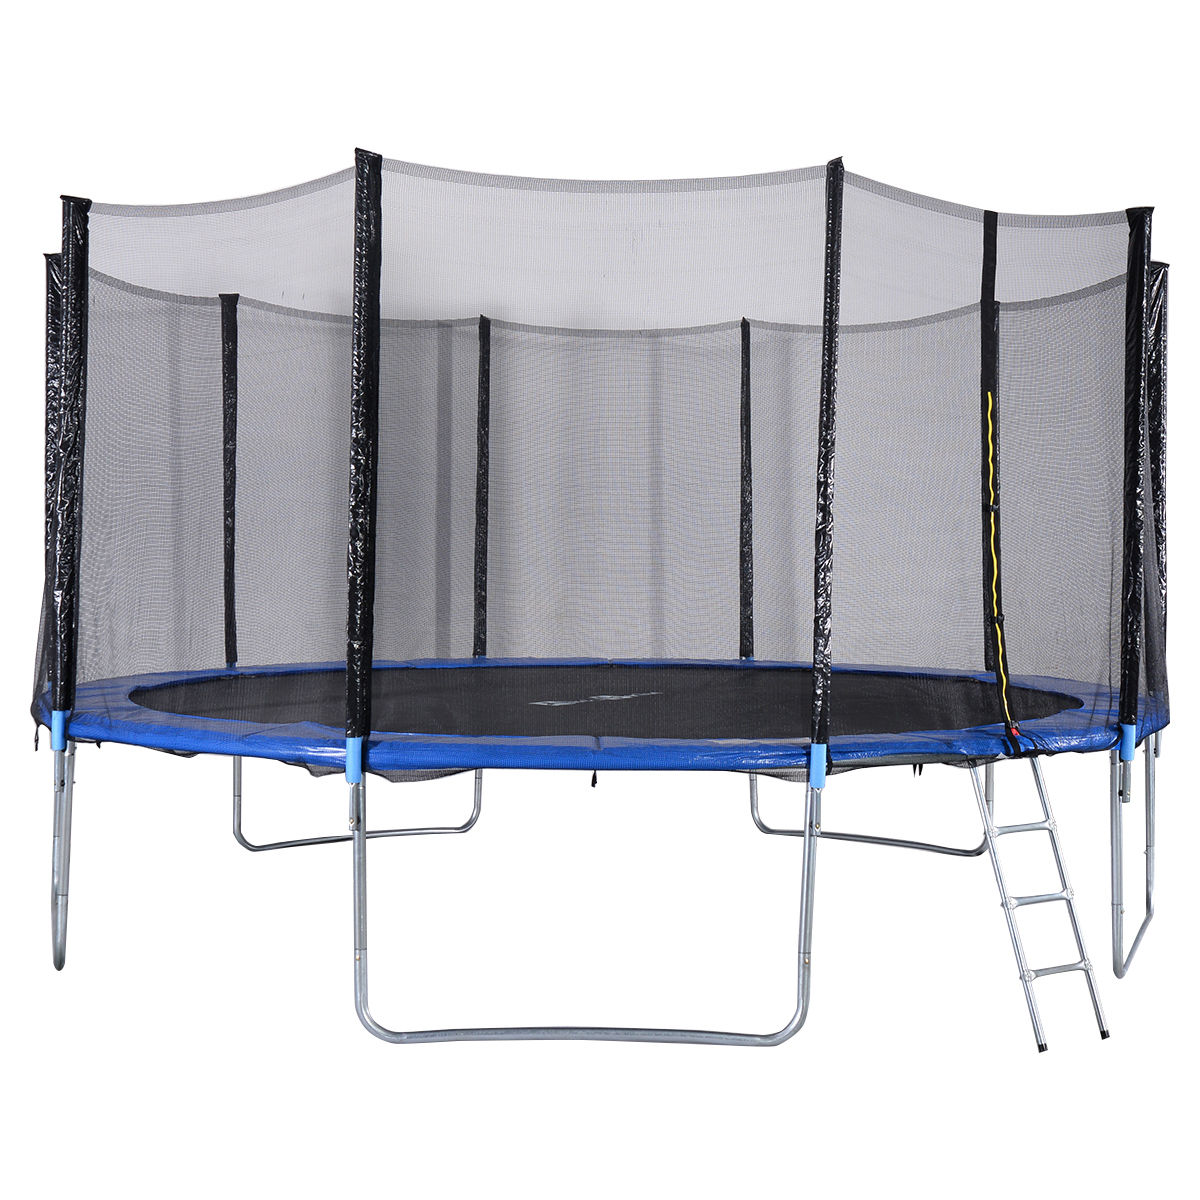 Shop Gymax 14 Ft Trampoline Safety Pad Epe Foam Spring: New 15FT Trampoline Combo Bounce Jump Safety Enclosure Net